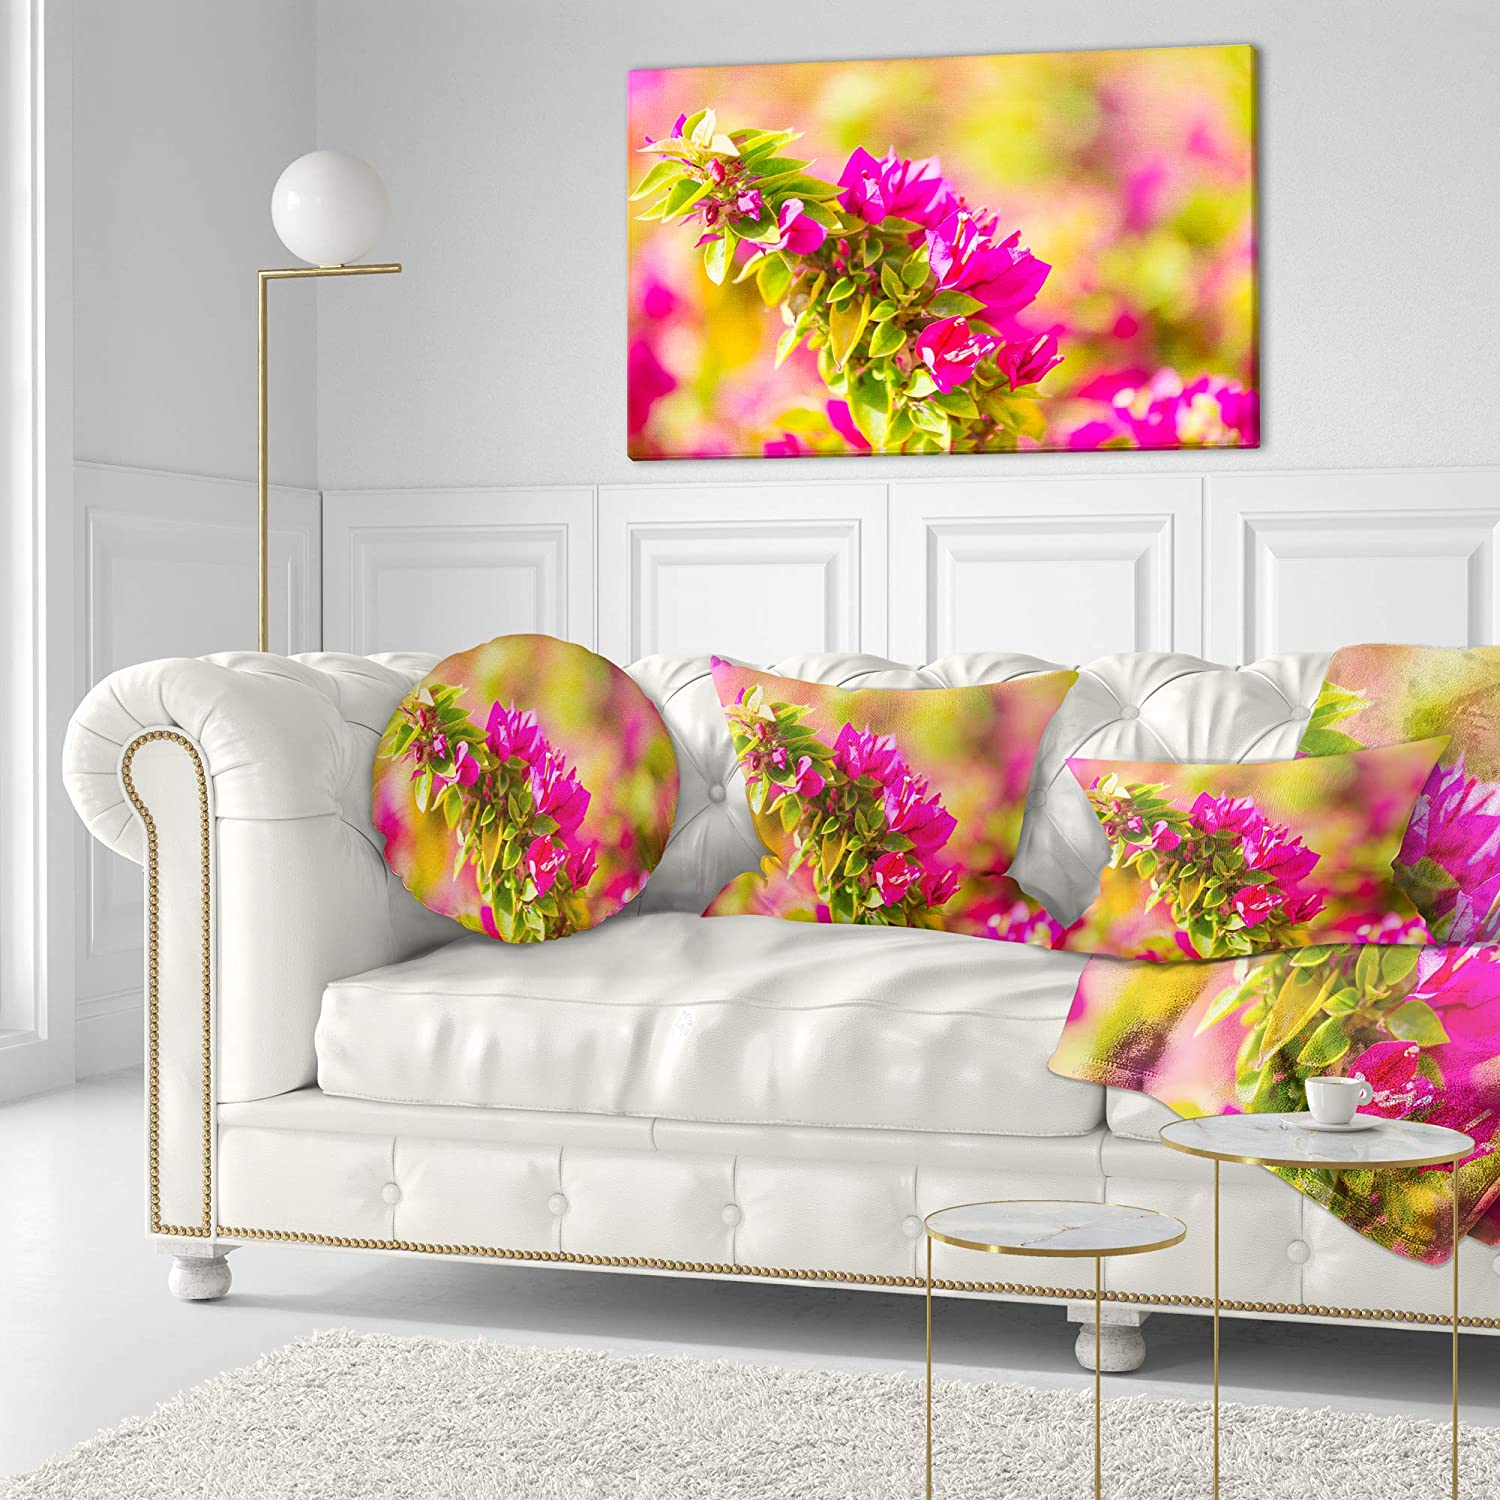 Insert Printed On Both Side Sofa Throw Pillow 20 Designart CU12418-20-20-C Beautiful Pink Bougainvillea Flowers Floral Round Cushion Cover for Living Room